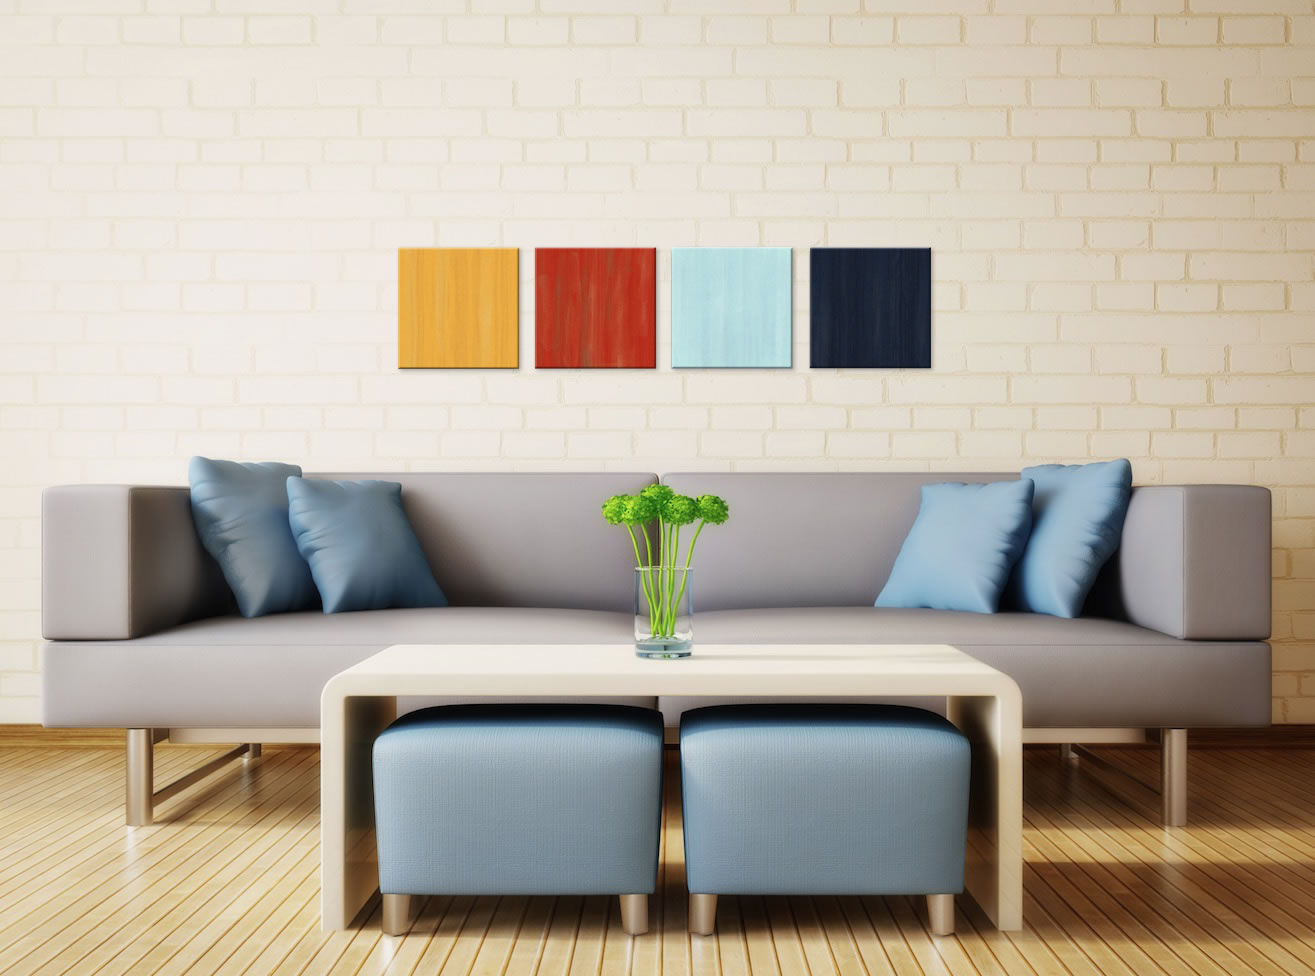 Hot and Cold - Colorful Contemporary Accents by Celeste Reiter - Lifestyle Image